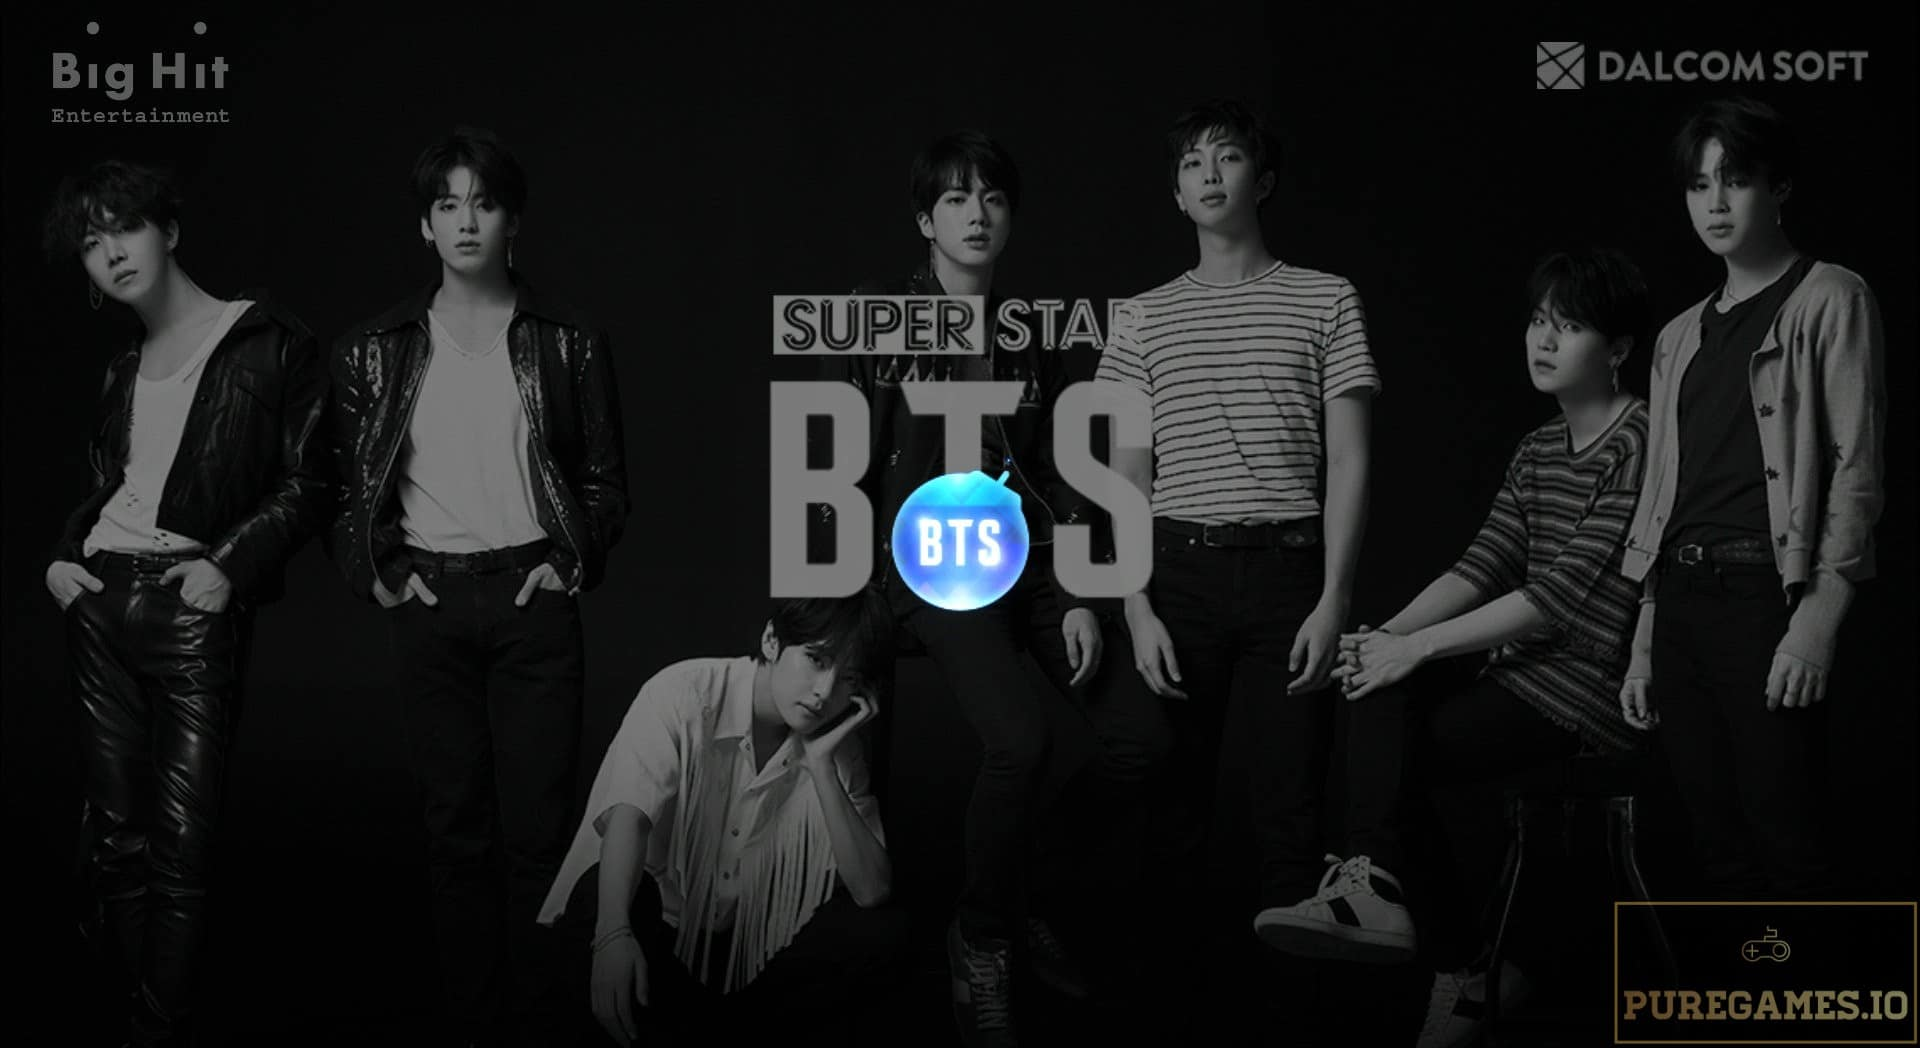 Download SuperStar BTS MOD APK - For Android/iOS 5